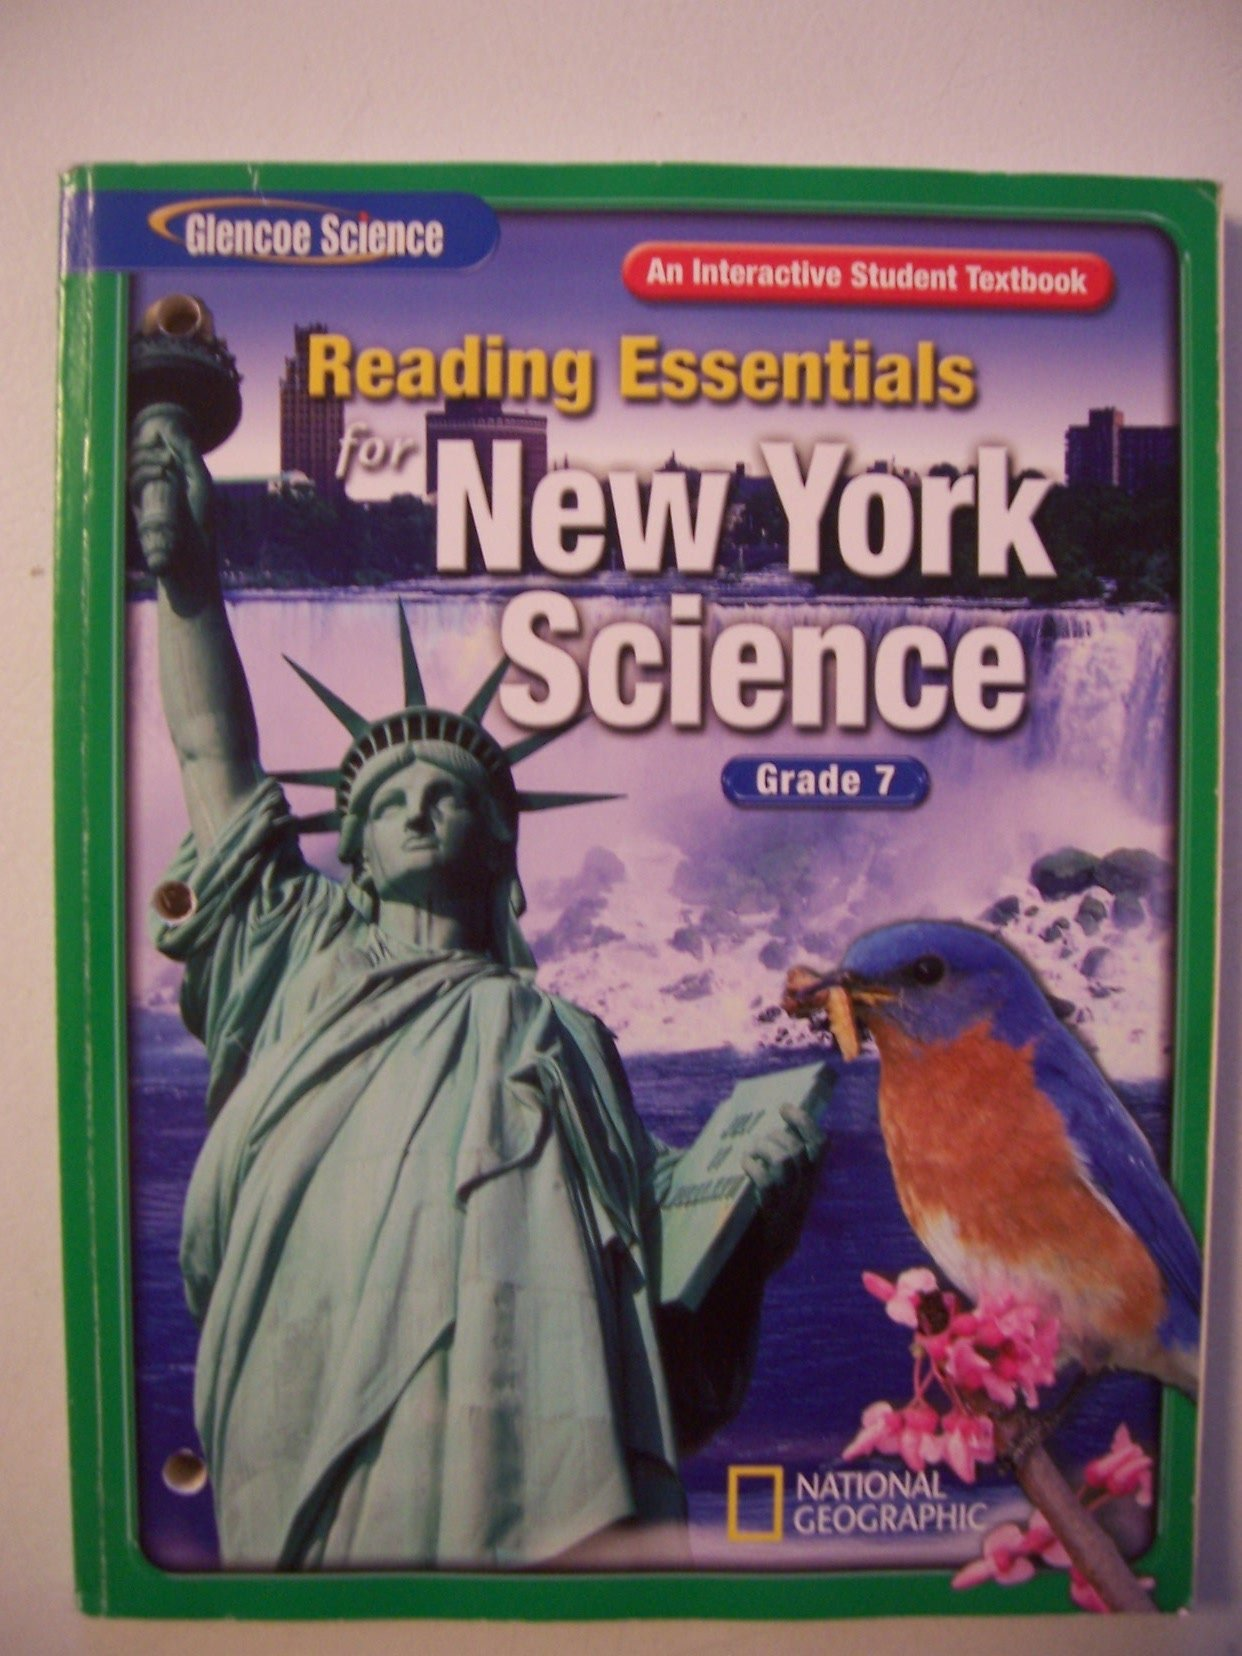 New york science glencoe topsimages reading essentials for new york science an interactive student textbook glencoe science grade not given books ibookread PDF